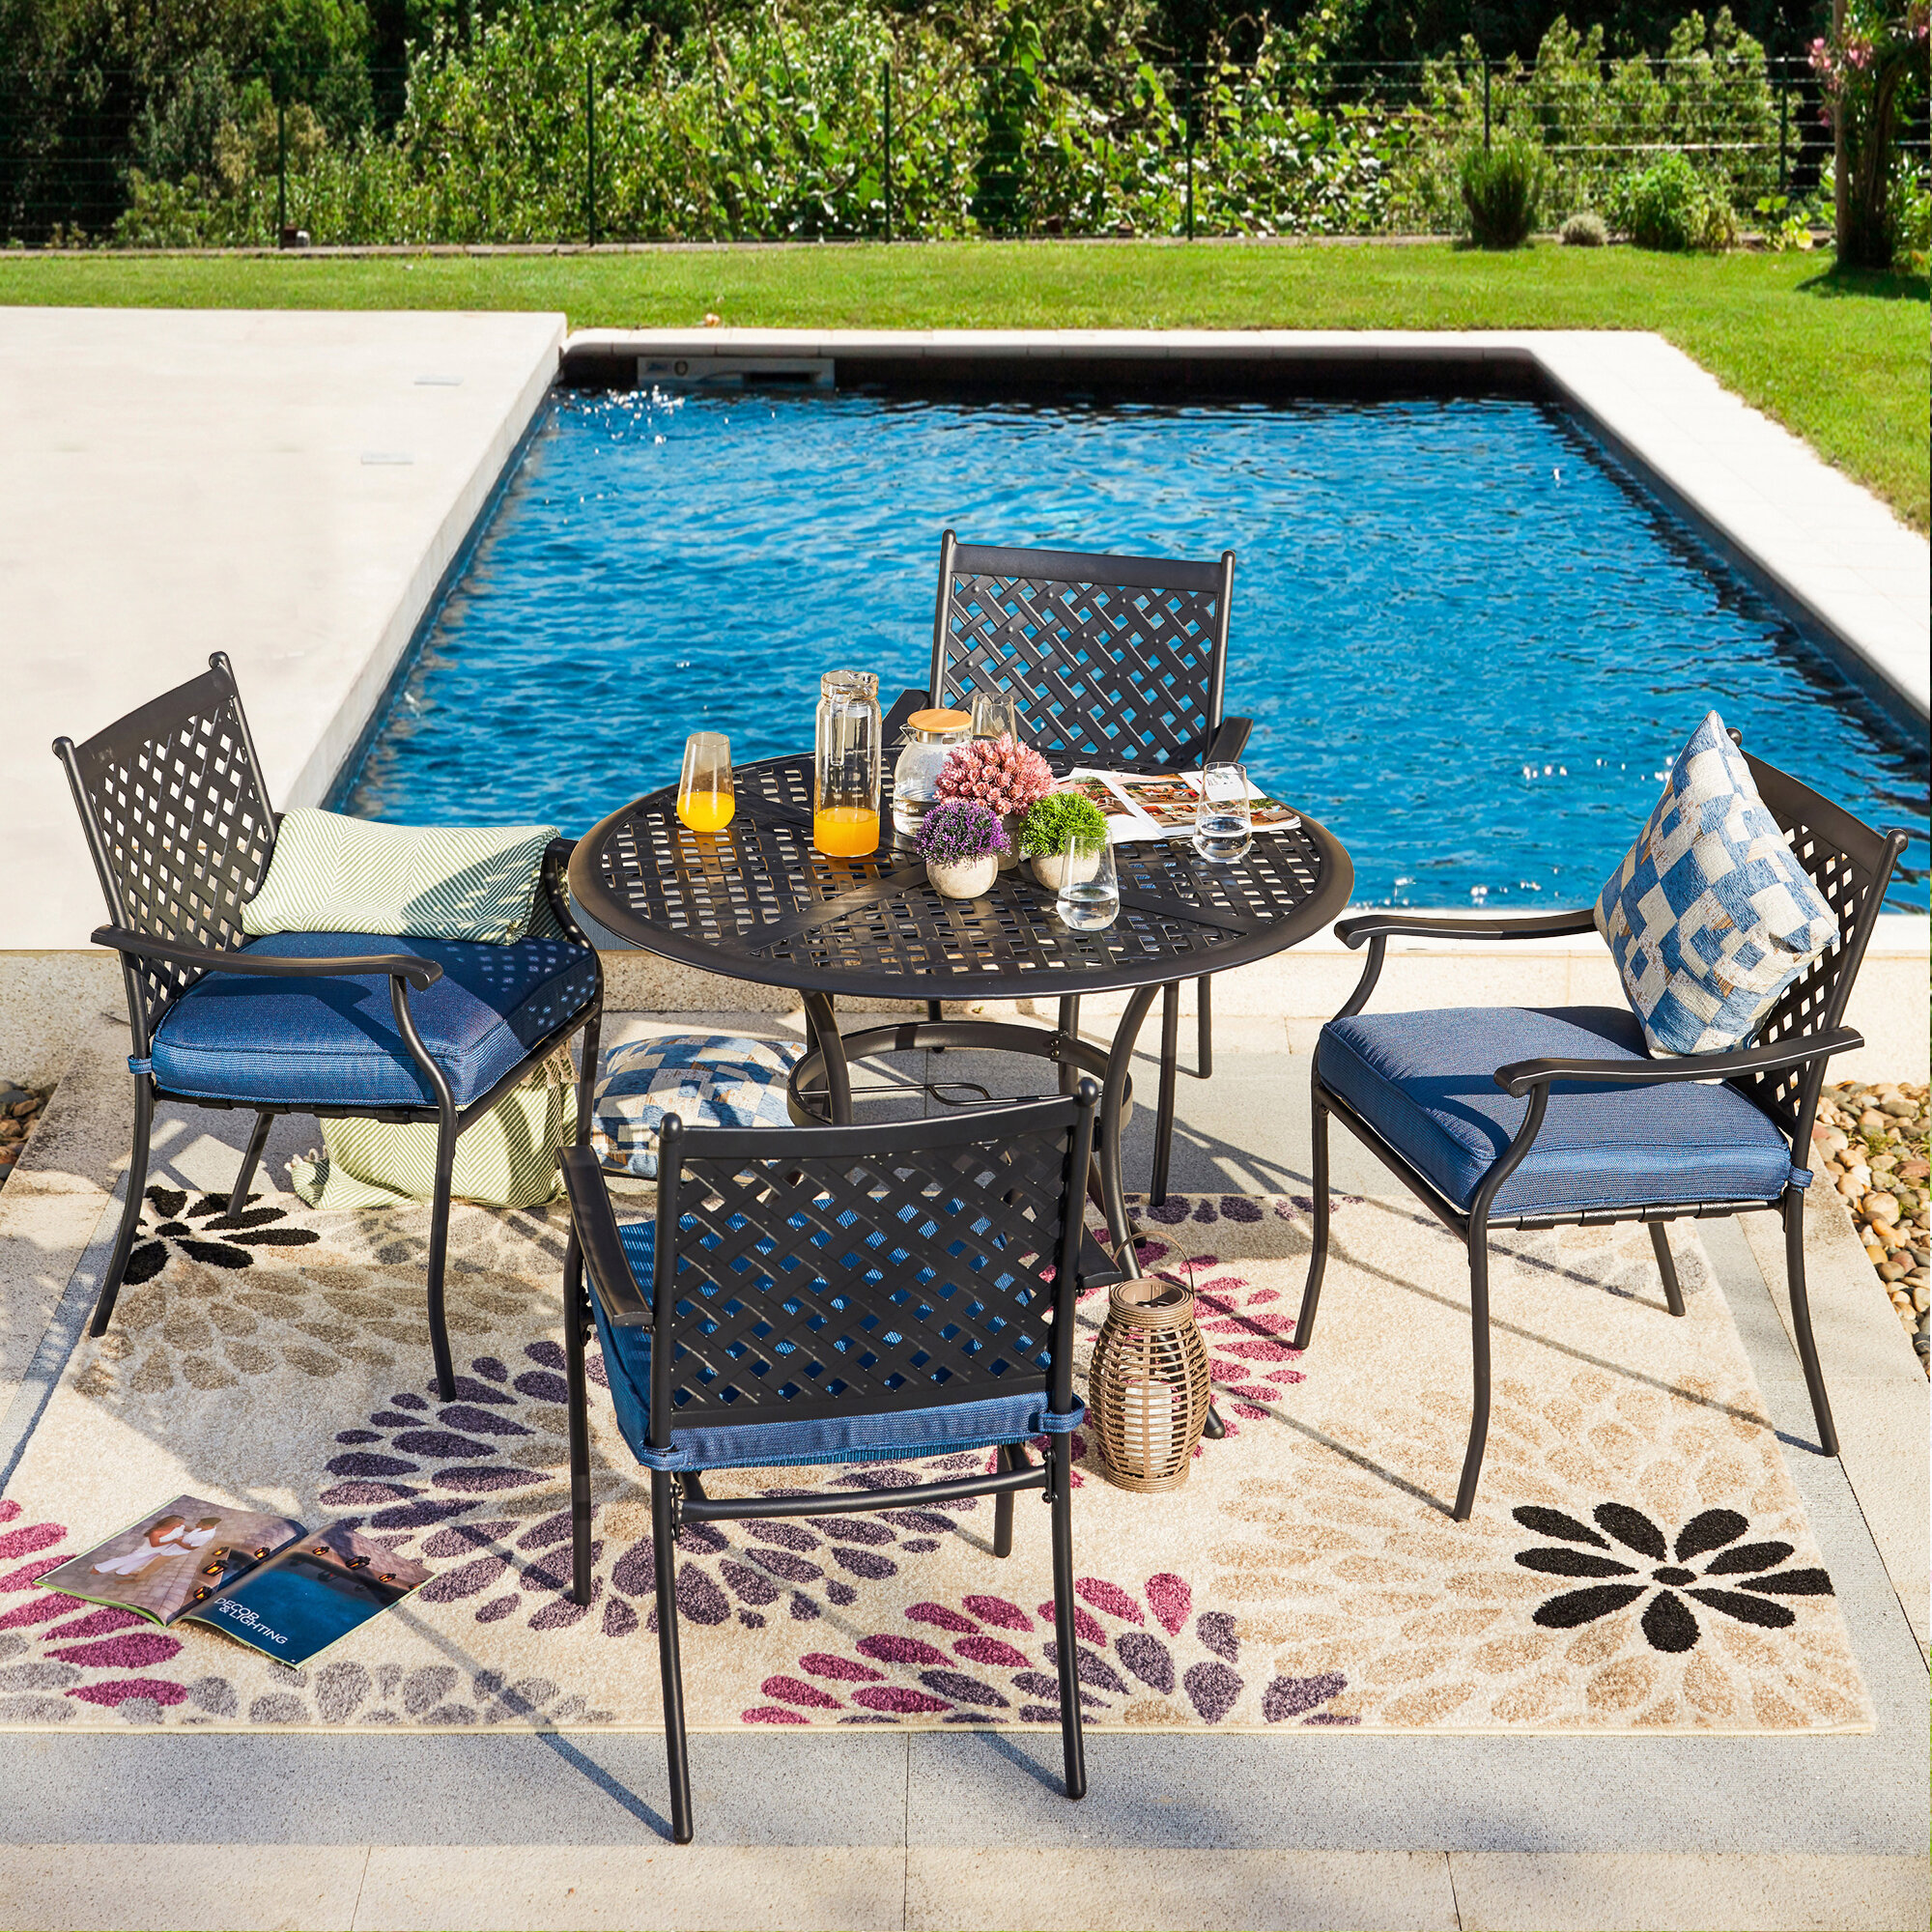 Balcony Patio Modern Outdoor Furniture with Seat Cushions for Poolside Sophia /& William Outdoor Patio 3 Pieces Dining Set with 2 PE Rattan Chairs and 1 Square Bistro Metal Side Table Porch